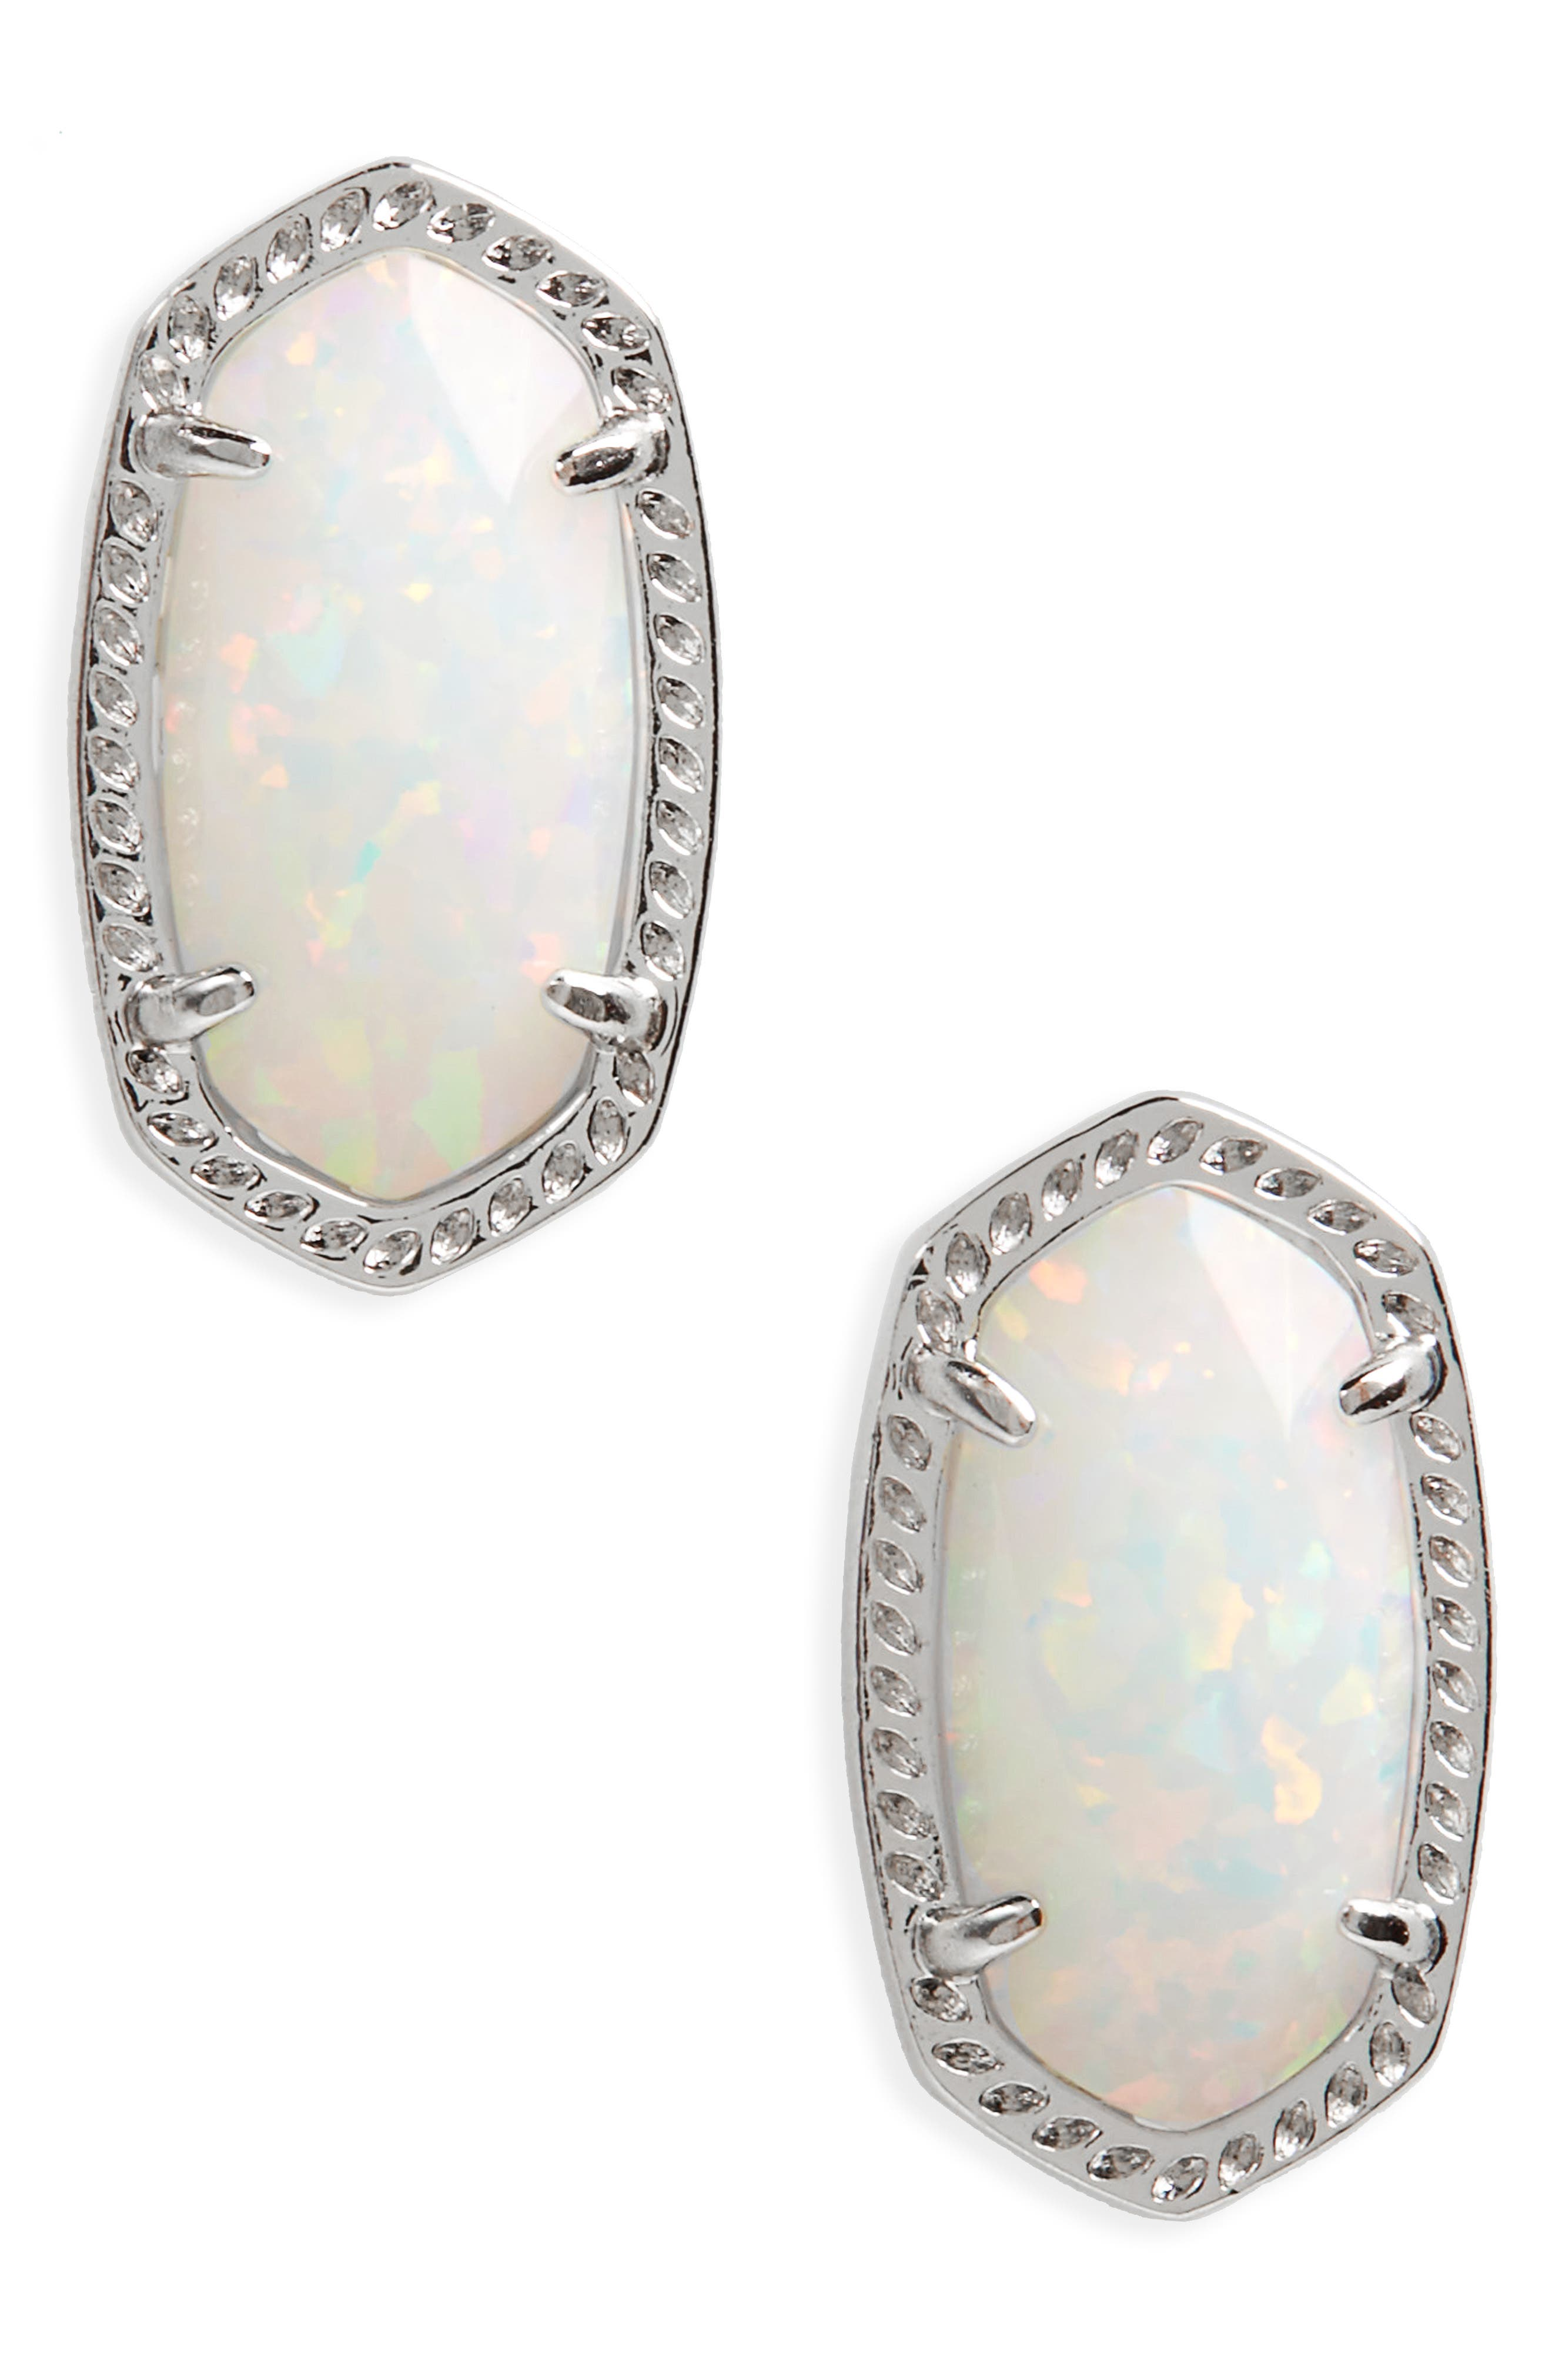 Kendra Scott Ellie Oval Stud Earrings